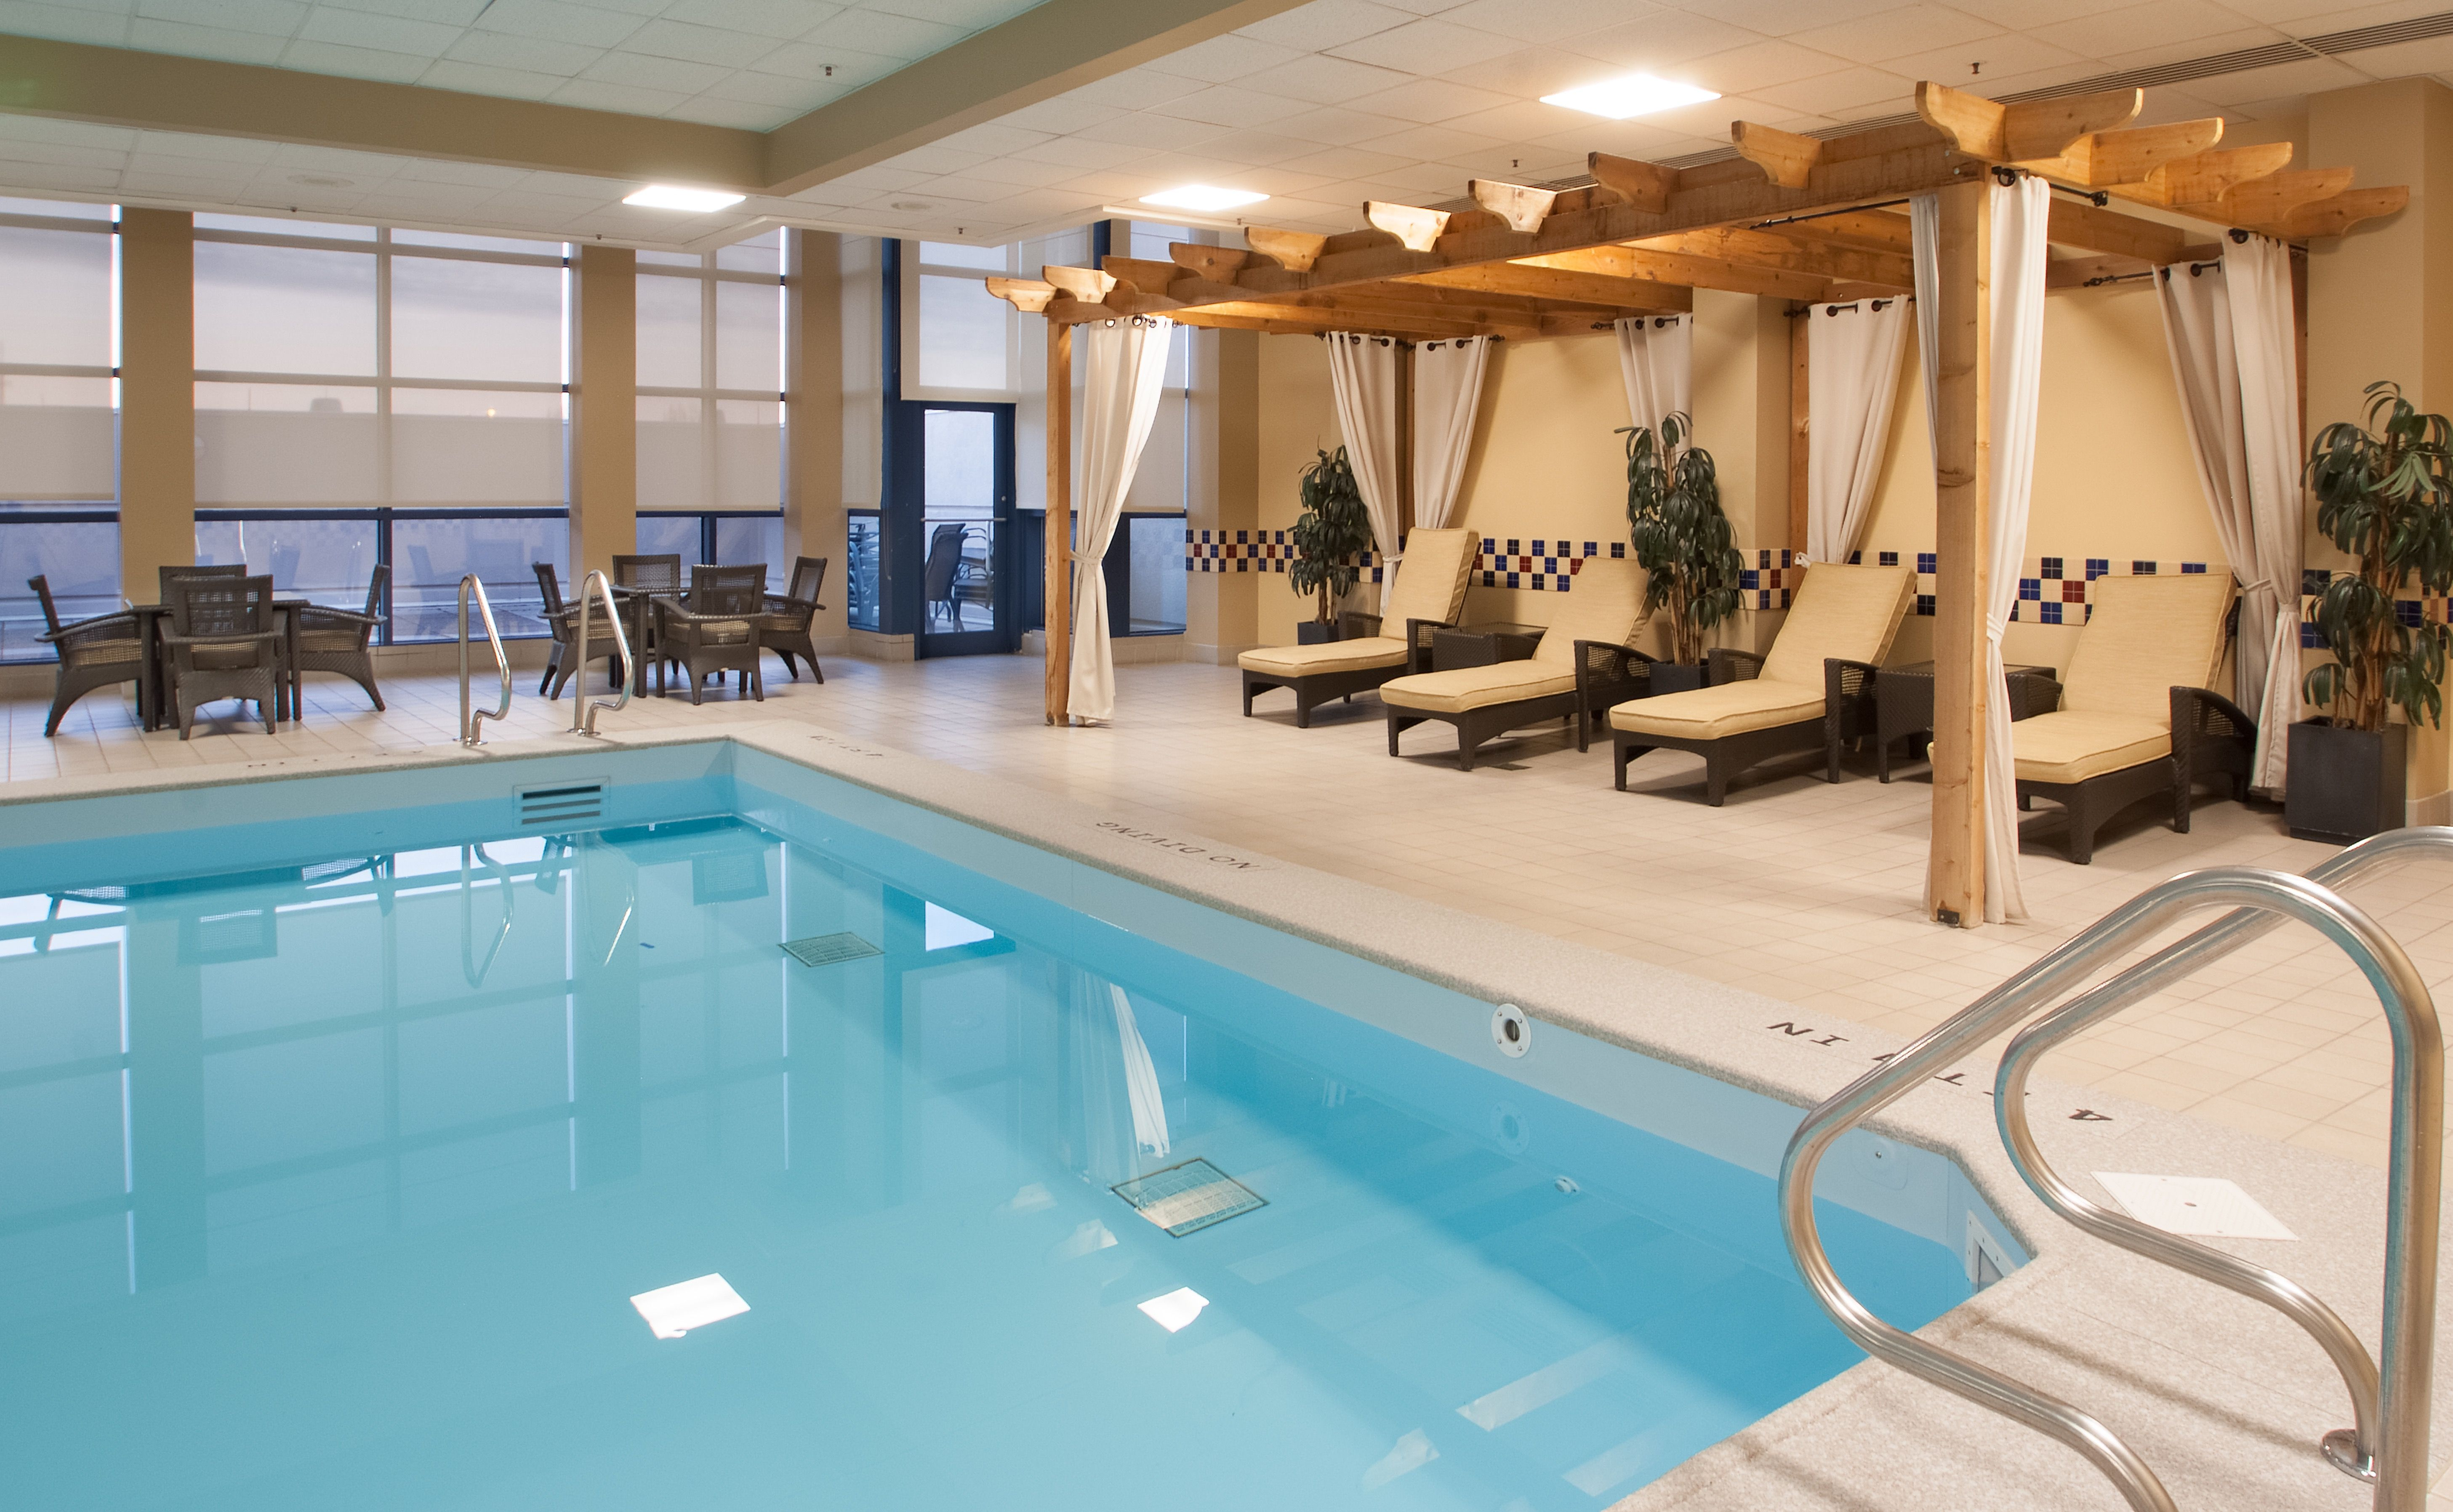 Our Indoor Pool Fun For Children And Perfect For Healthy Laps